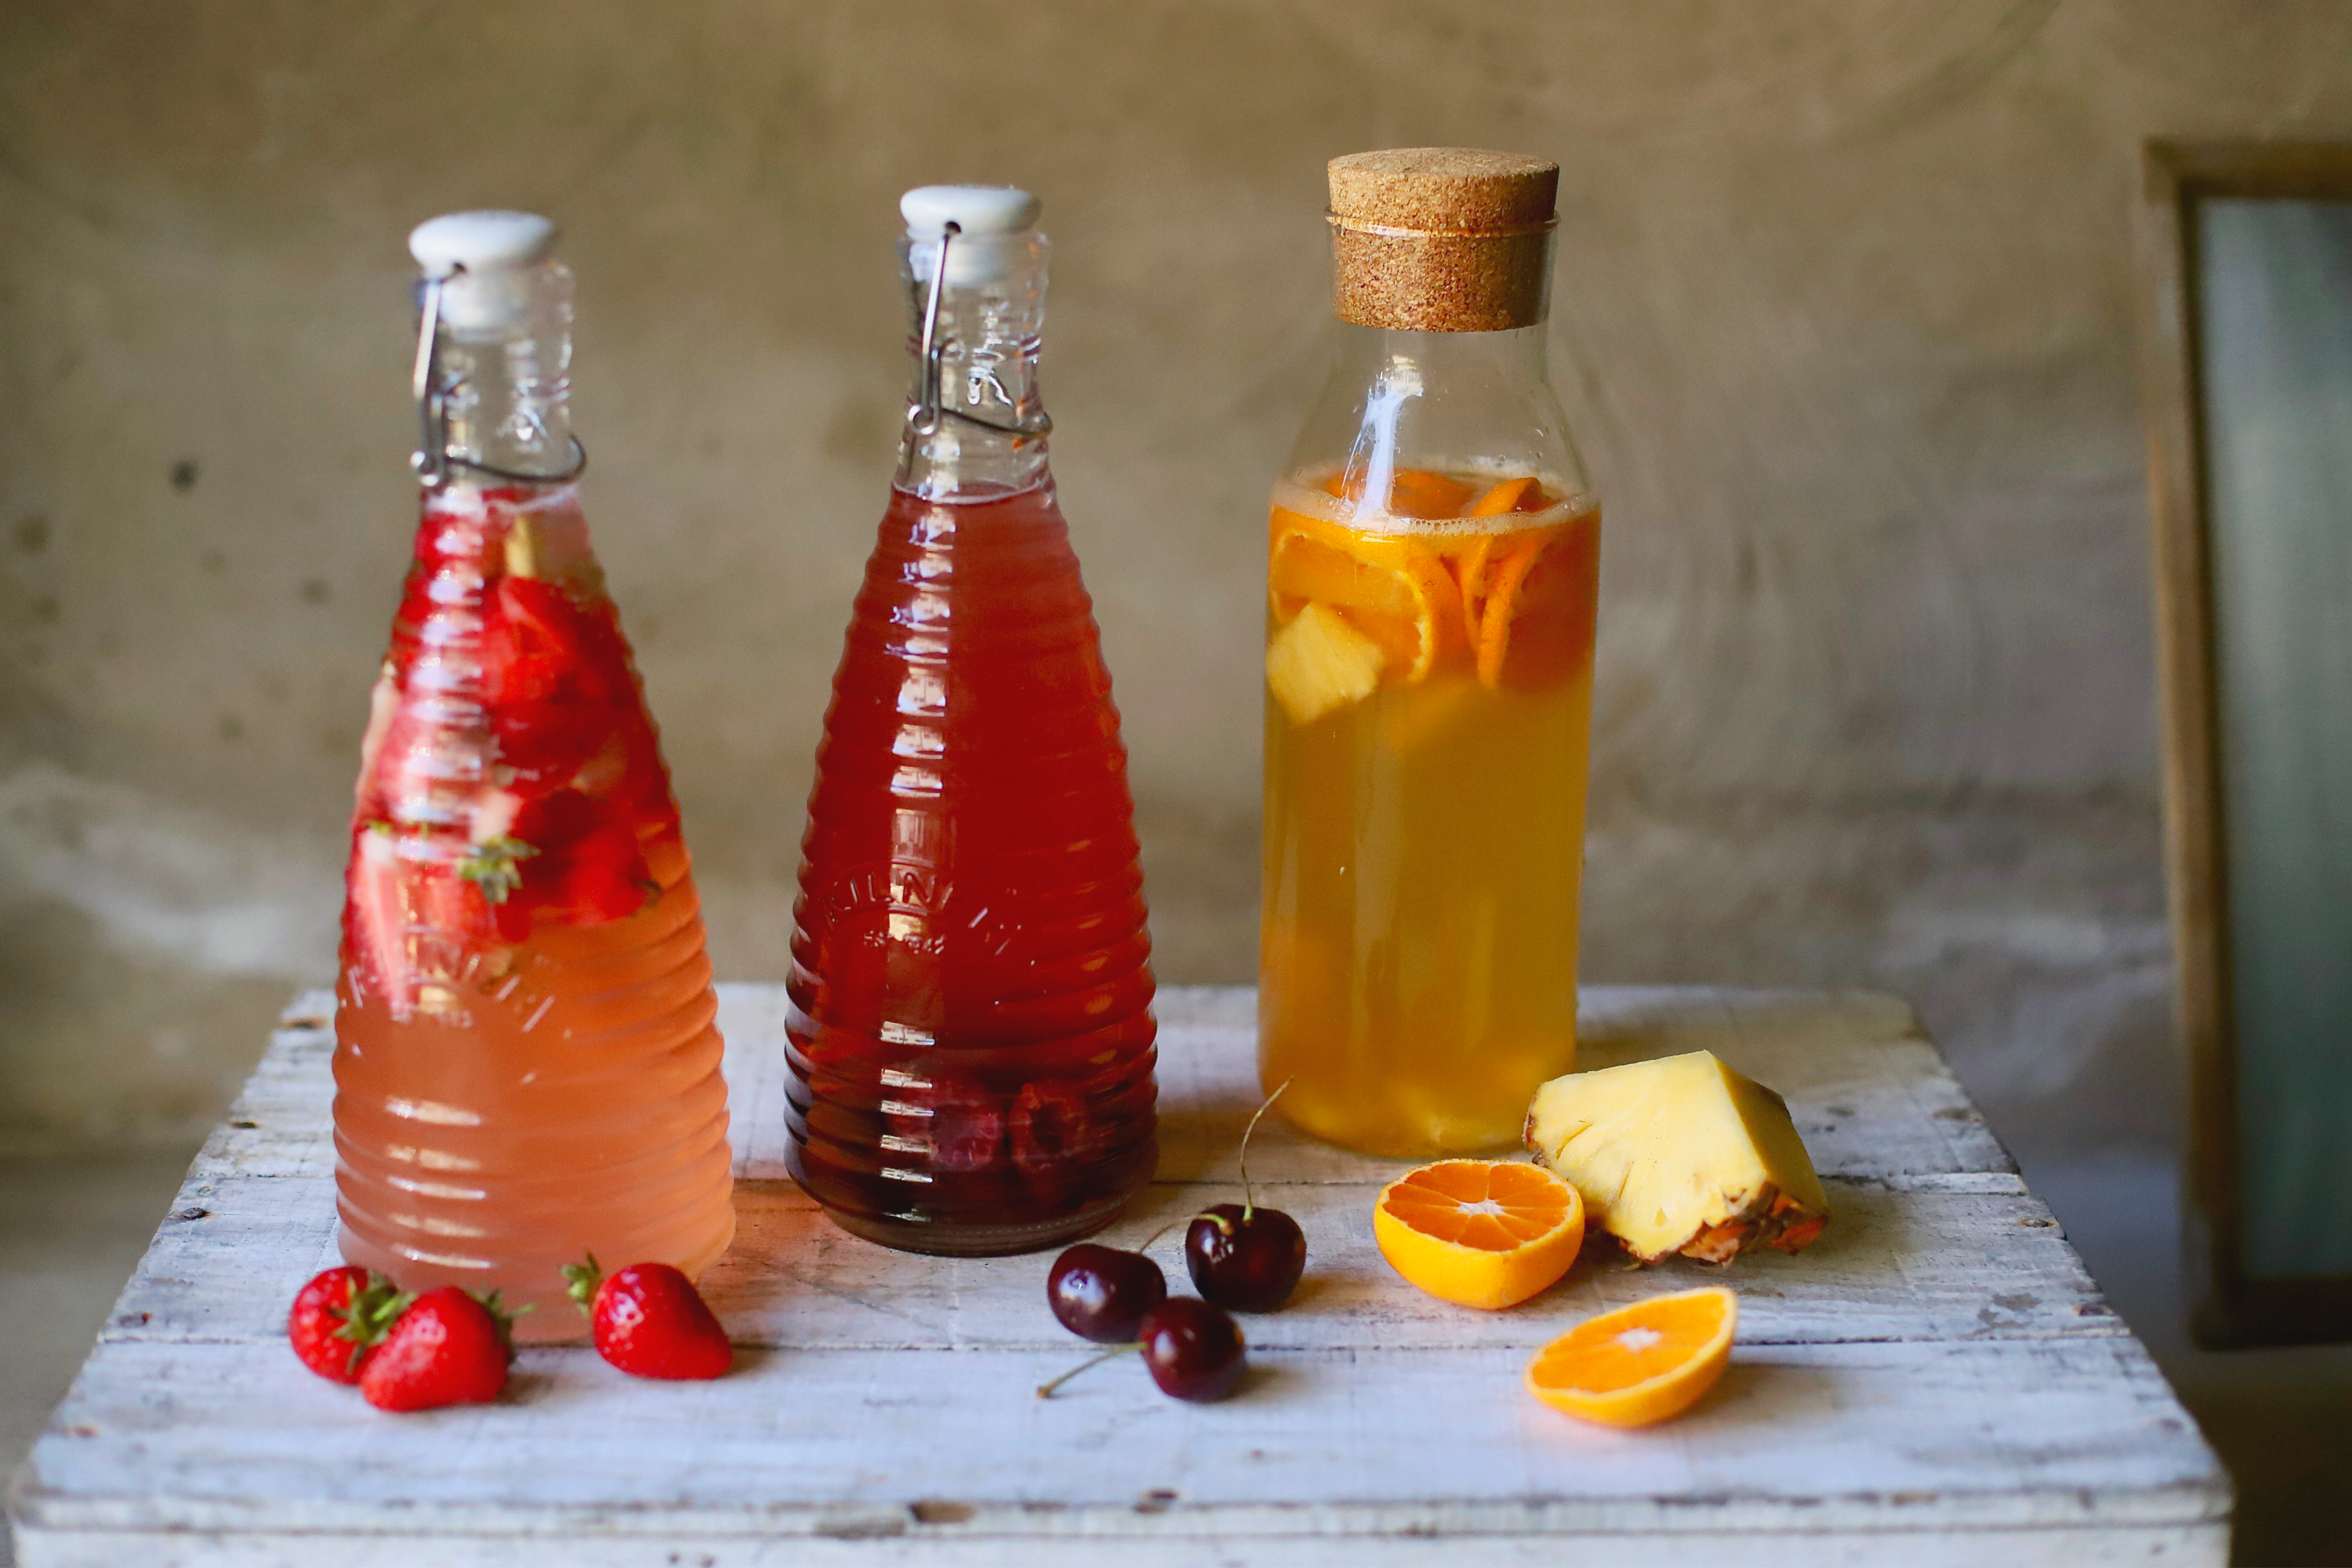 12 summer-kissed, fruity water kefir soda recipes to see you through the hottest days. Ease and adaptable. Fizzy and fun. #kefir #drinks #recipe #nondairy #guthealth